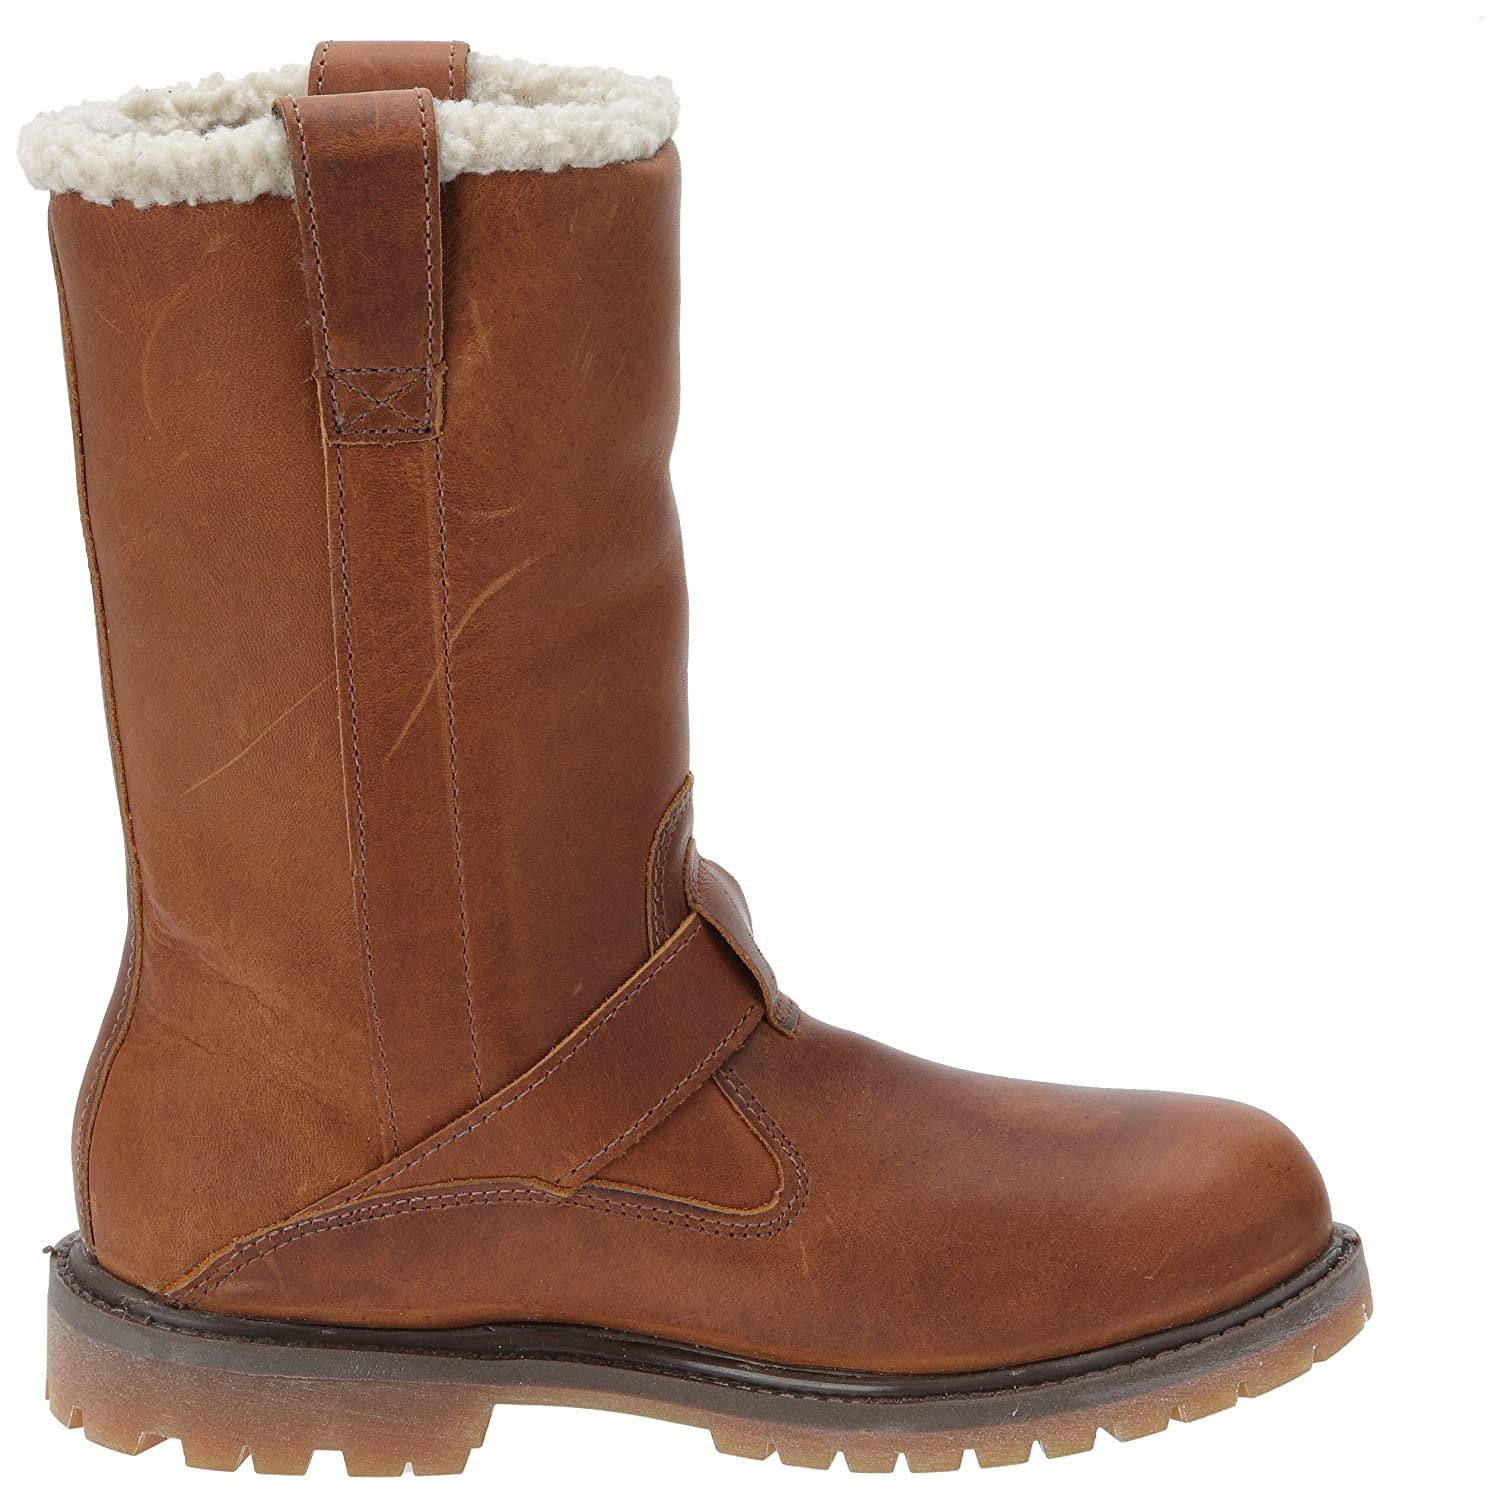 nellie timberland boots